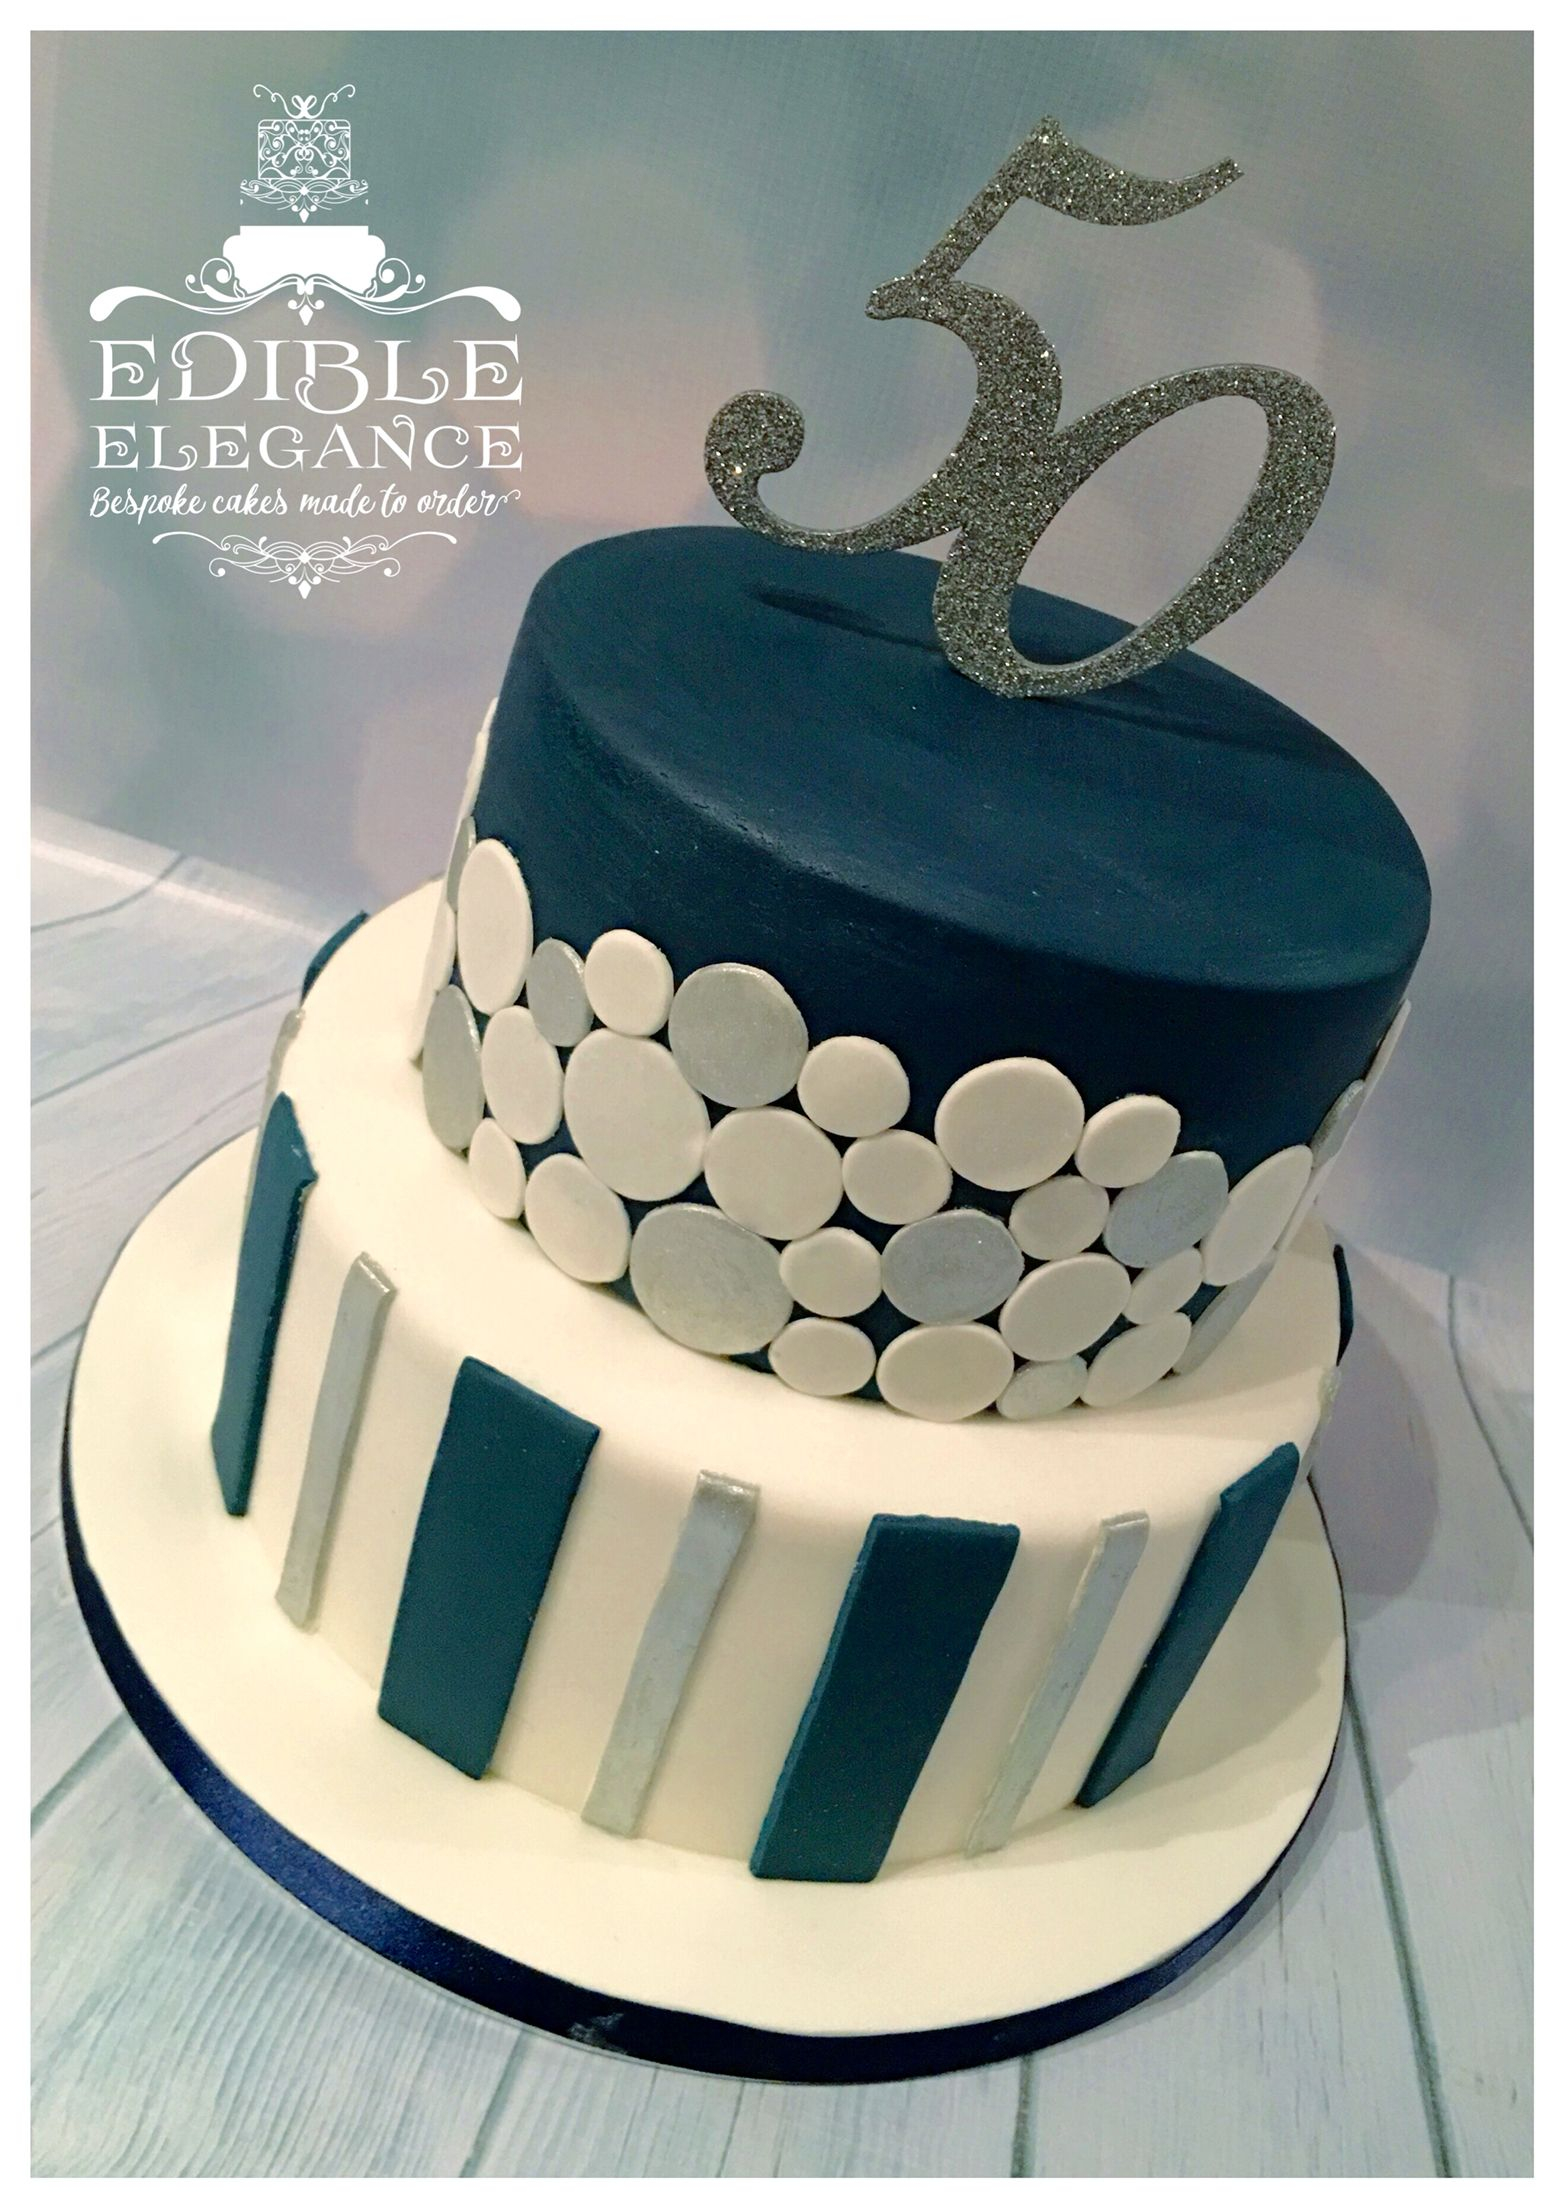 Birthday Cake Designs For Adults 50th Contemporary Design In Masculine Blue White And